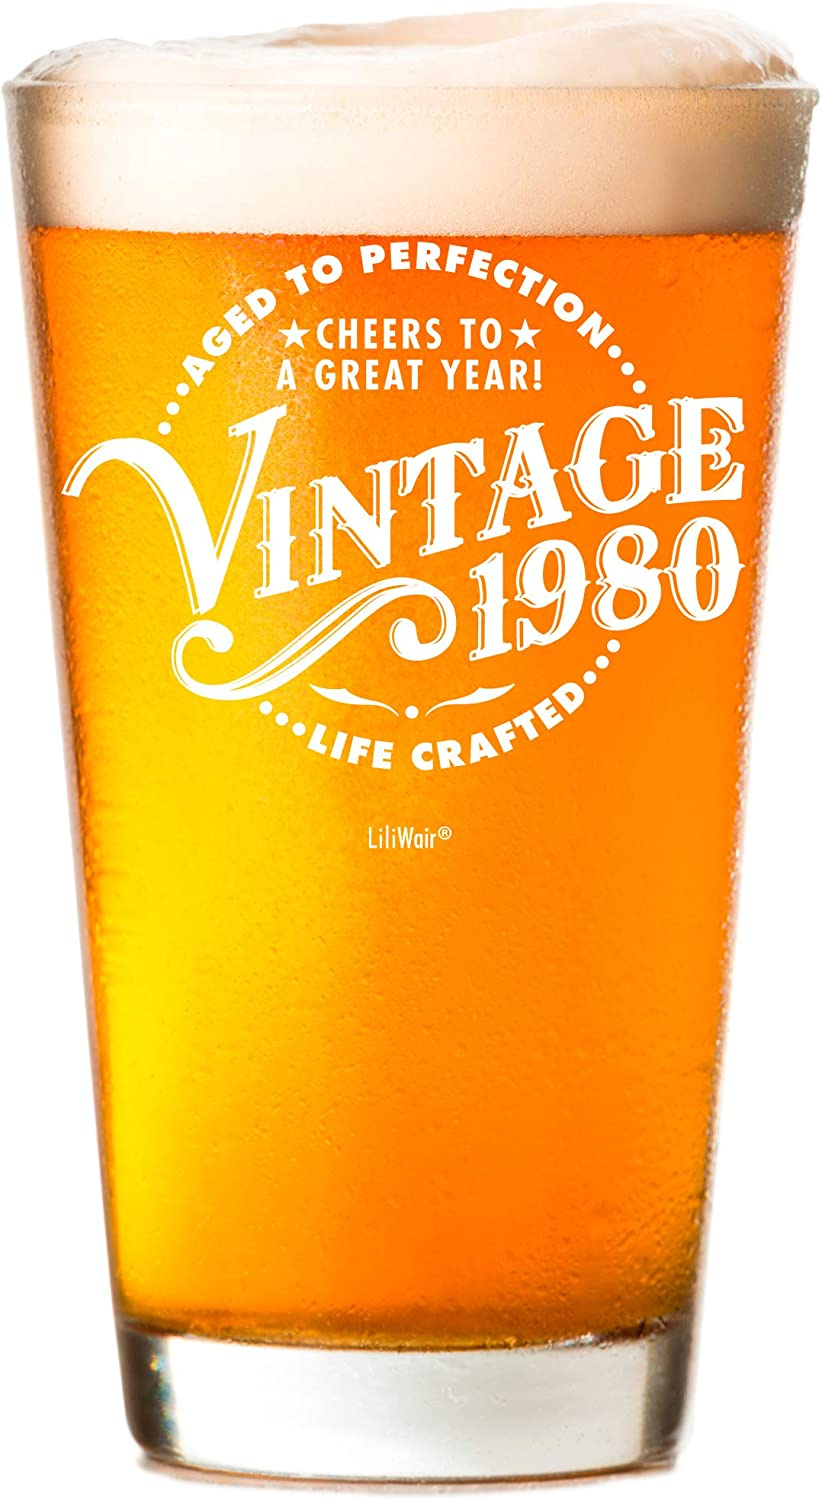 Mom 16 oz Funny Vintage 23 Year Old Pint Glasses for Party Decorations Husband 1997 23rd Birthday Gifts for Men and Women Beer Glass Wife Anniversary Gift Ideas for Dad Best Craft Beers Mug